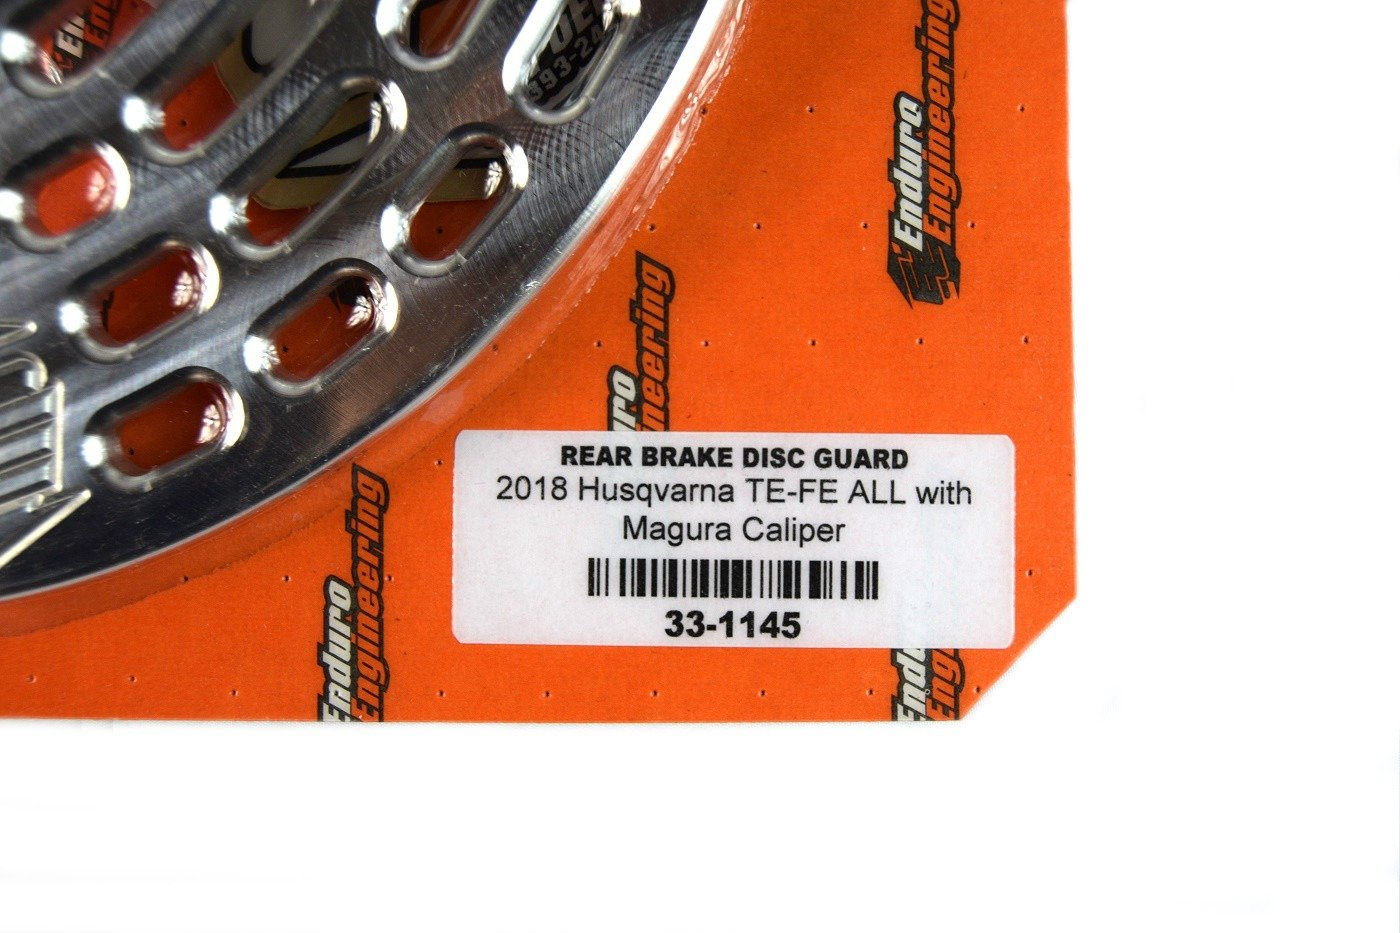 Enduro Engineering 33-1145 Rear Brake Disc Guard 2018 Husqvarna TE FE